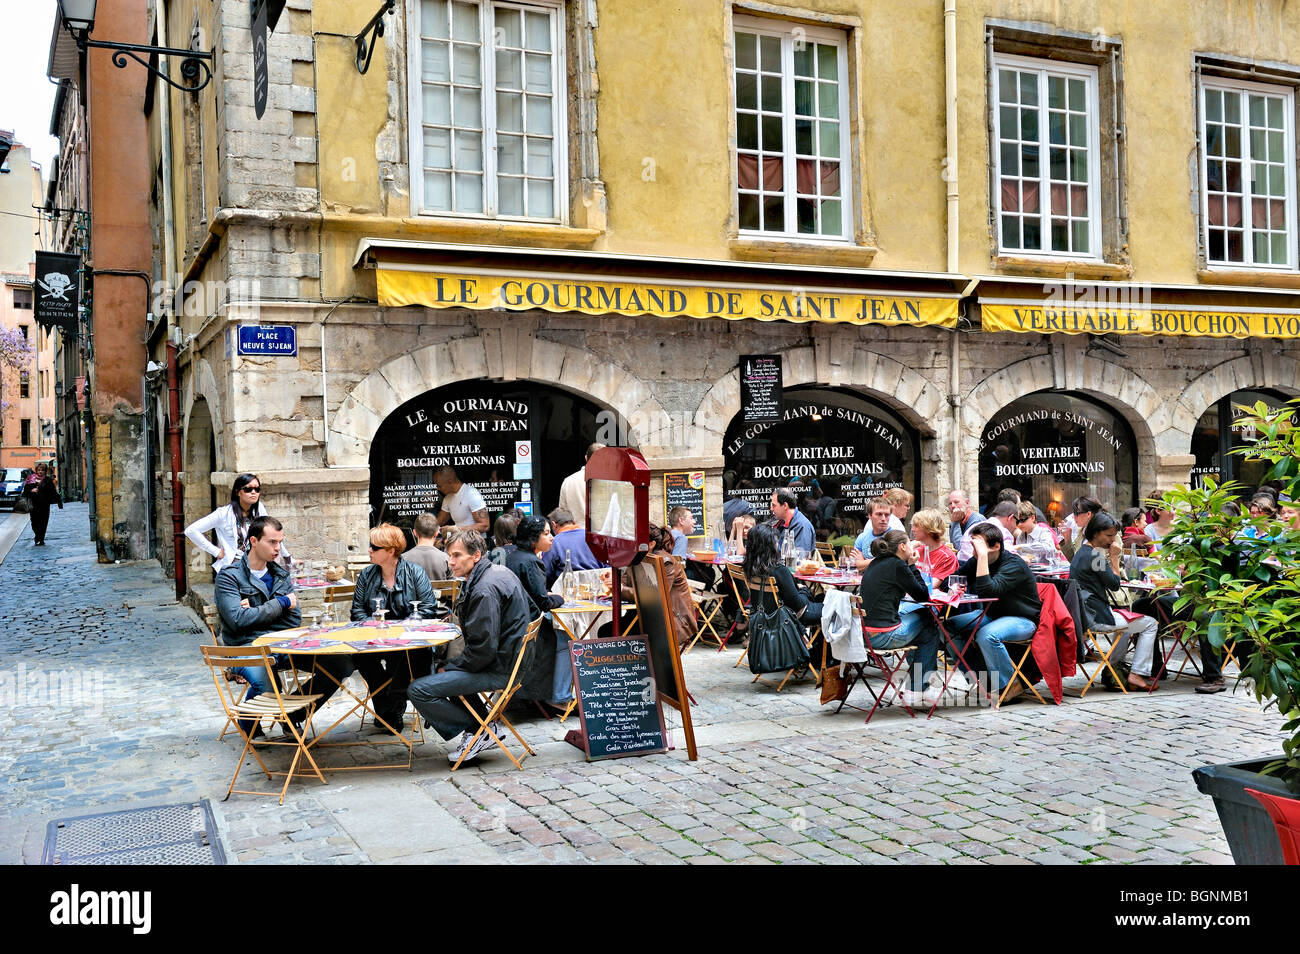 Restaurant Exterieur Lyon Lyon Restaurant Stock Photos Lyon Restaurant Stock Images Alamy